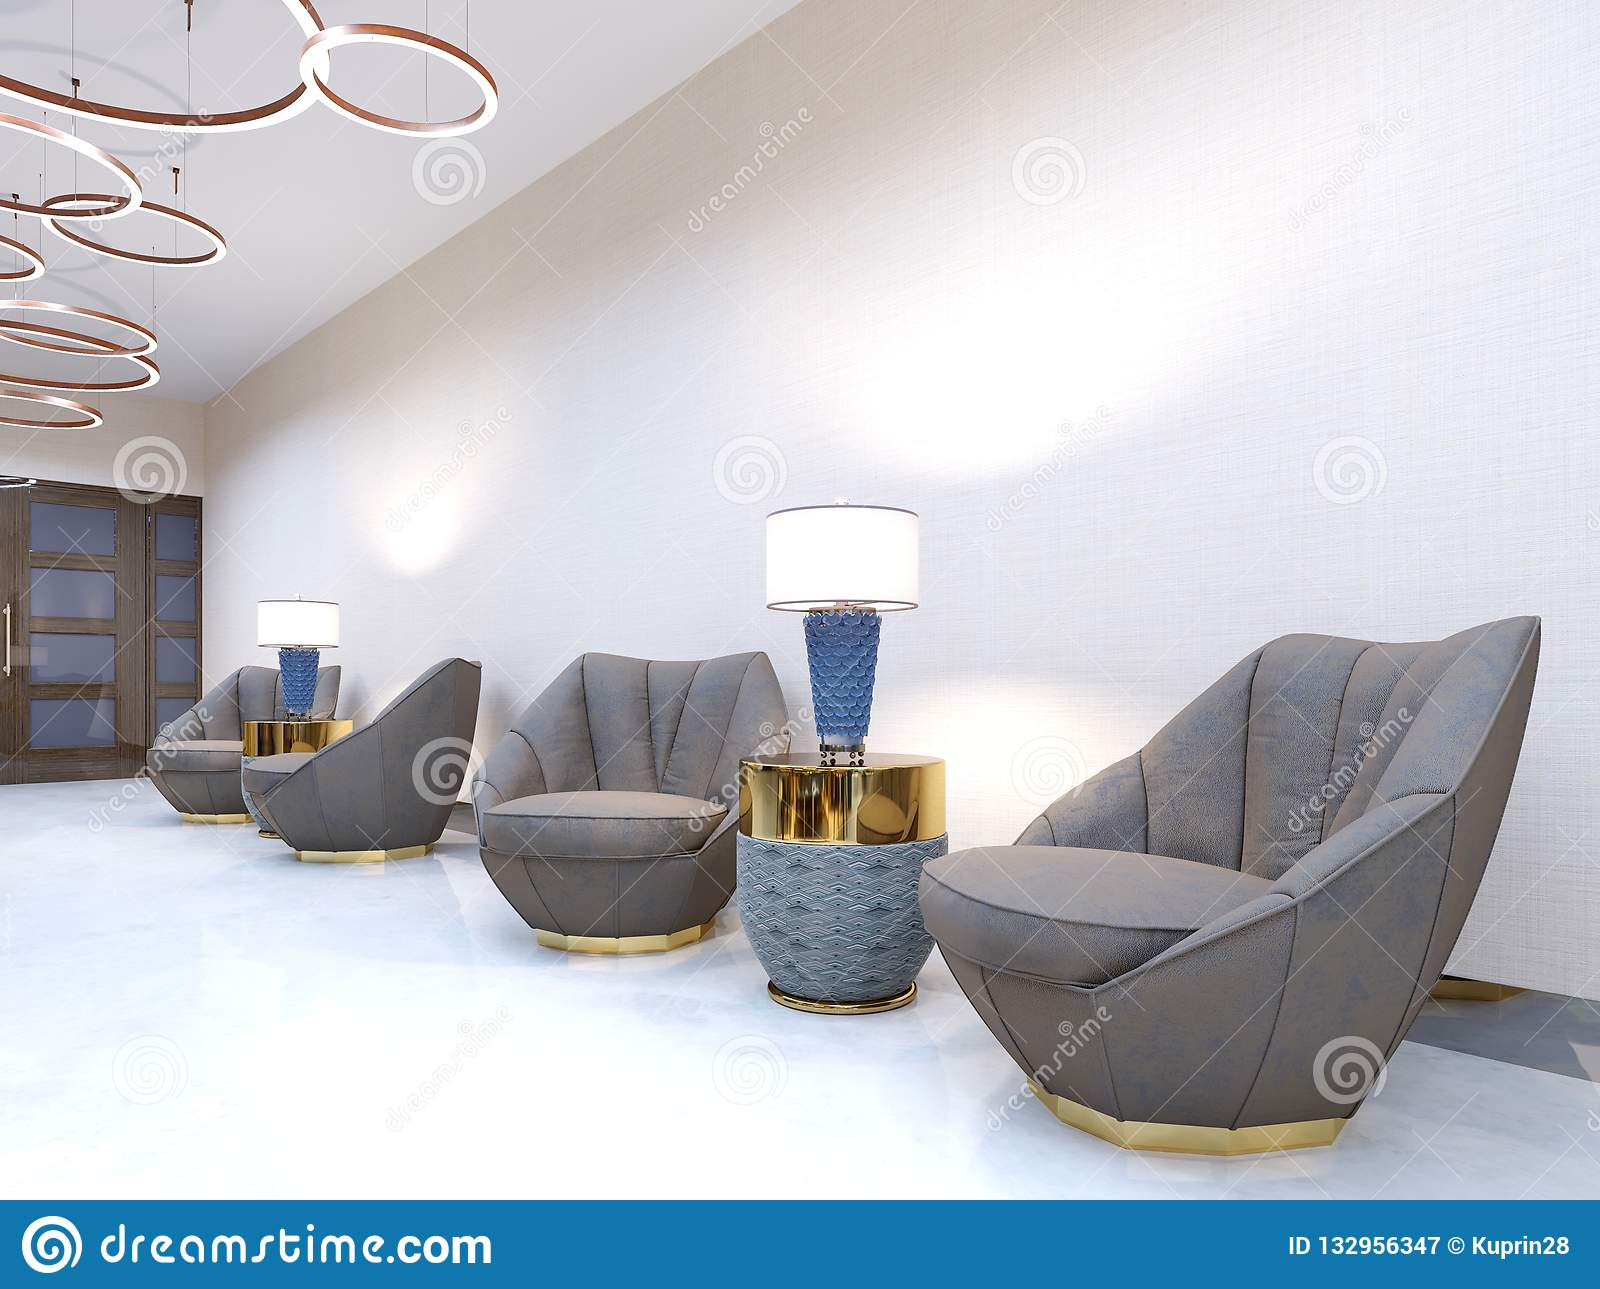 Super A Modern Hotel With A Reception Area And Lounge With Large Gmtry Best Dining Table And Chair Ideas Images Gmtryco